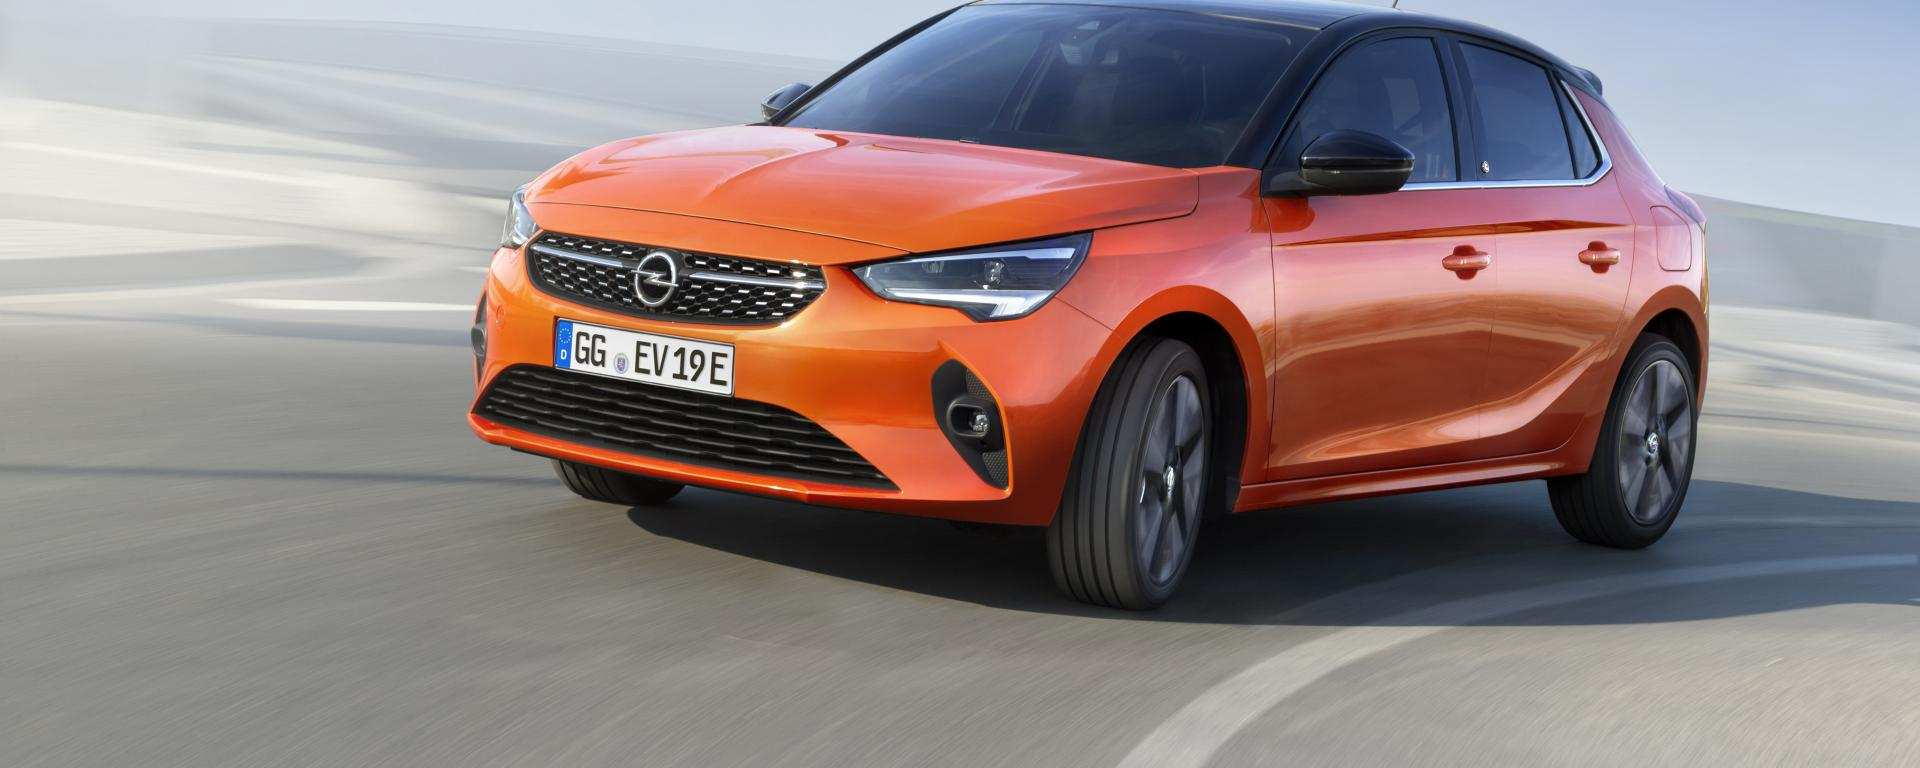 59 All New On Star Opel 2020 Redesign for On Star Opel 2020